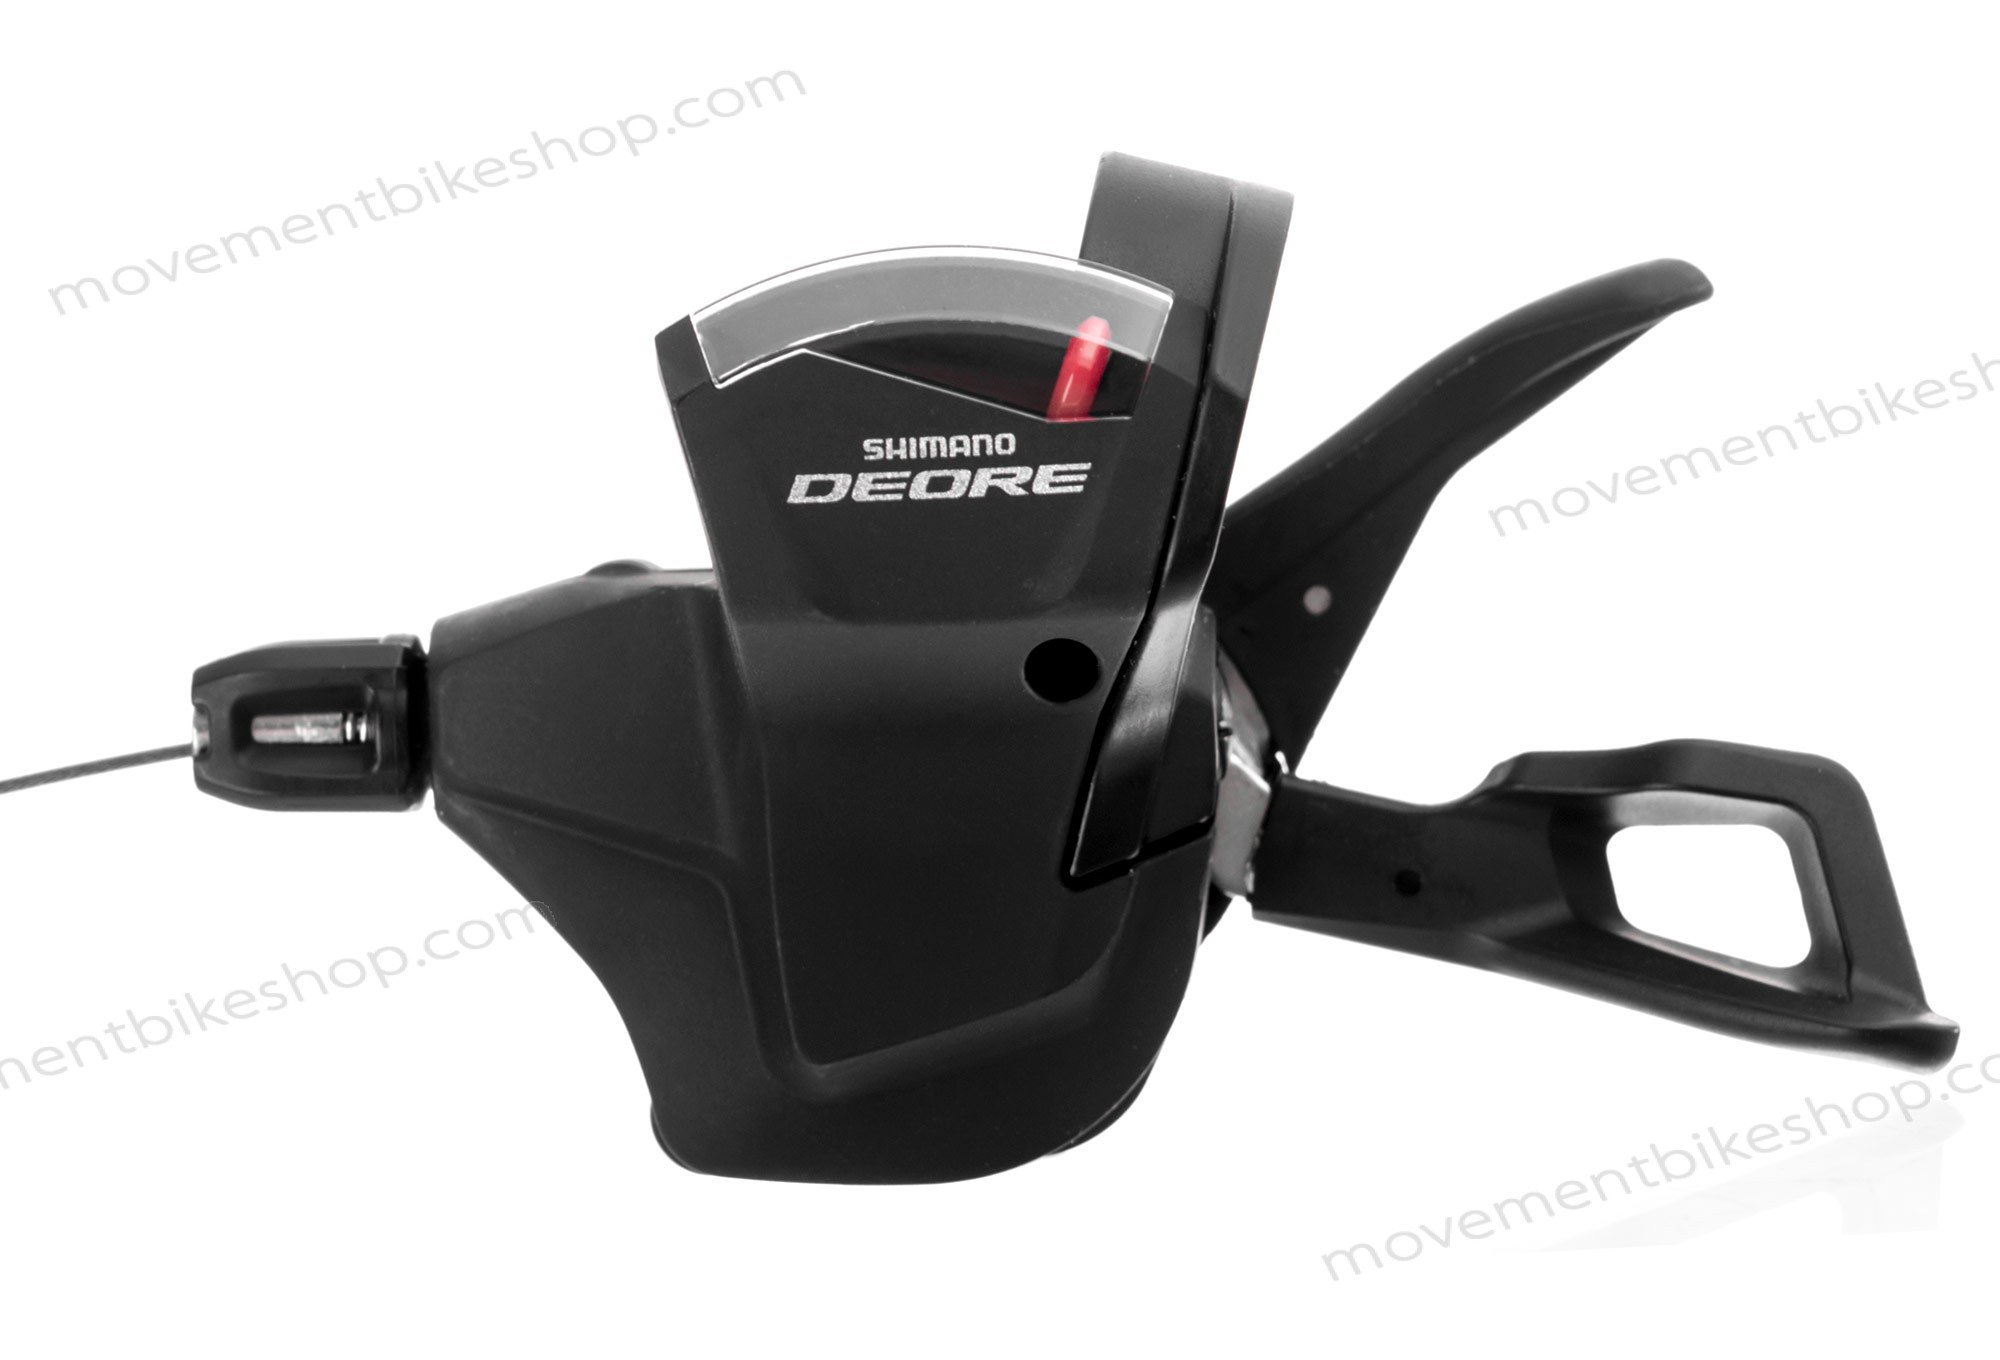 Shimano On Sale - Deore SL-M6000-R 3x10 Speed Left Trigger Shifter Clamp Fixation ★ ★ ★ With Low Price - Shimano On Sale Deore SL-M6000-R 3x10 Speed Left Trigger Shifter Clamp Fixation ★ ★ ★ With Low Price-31